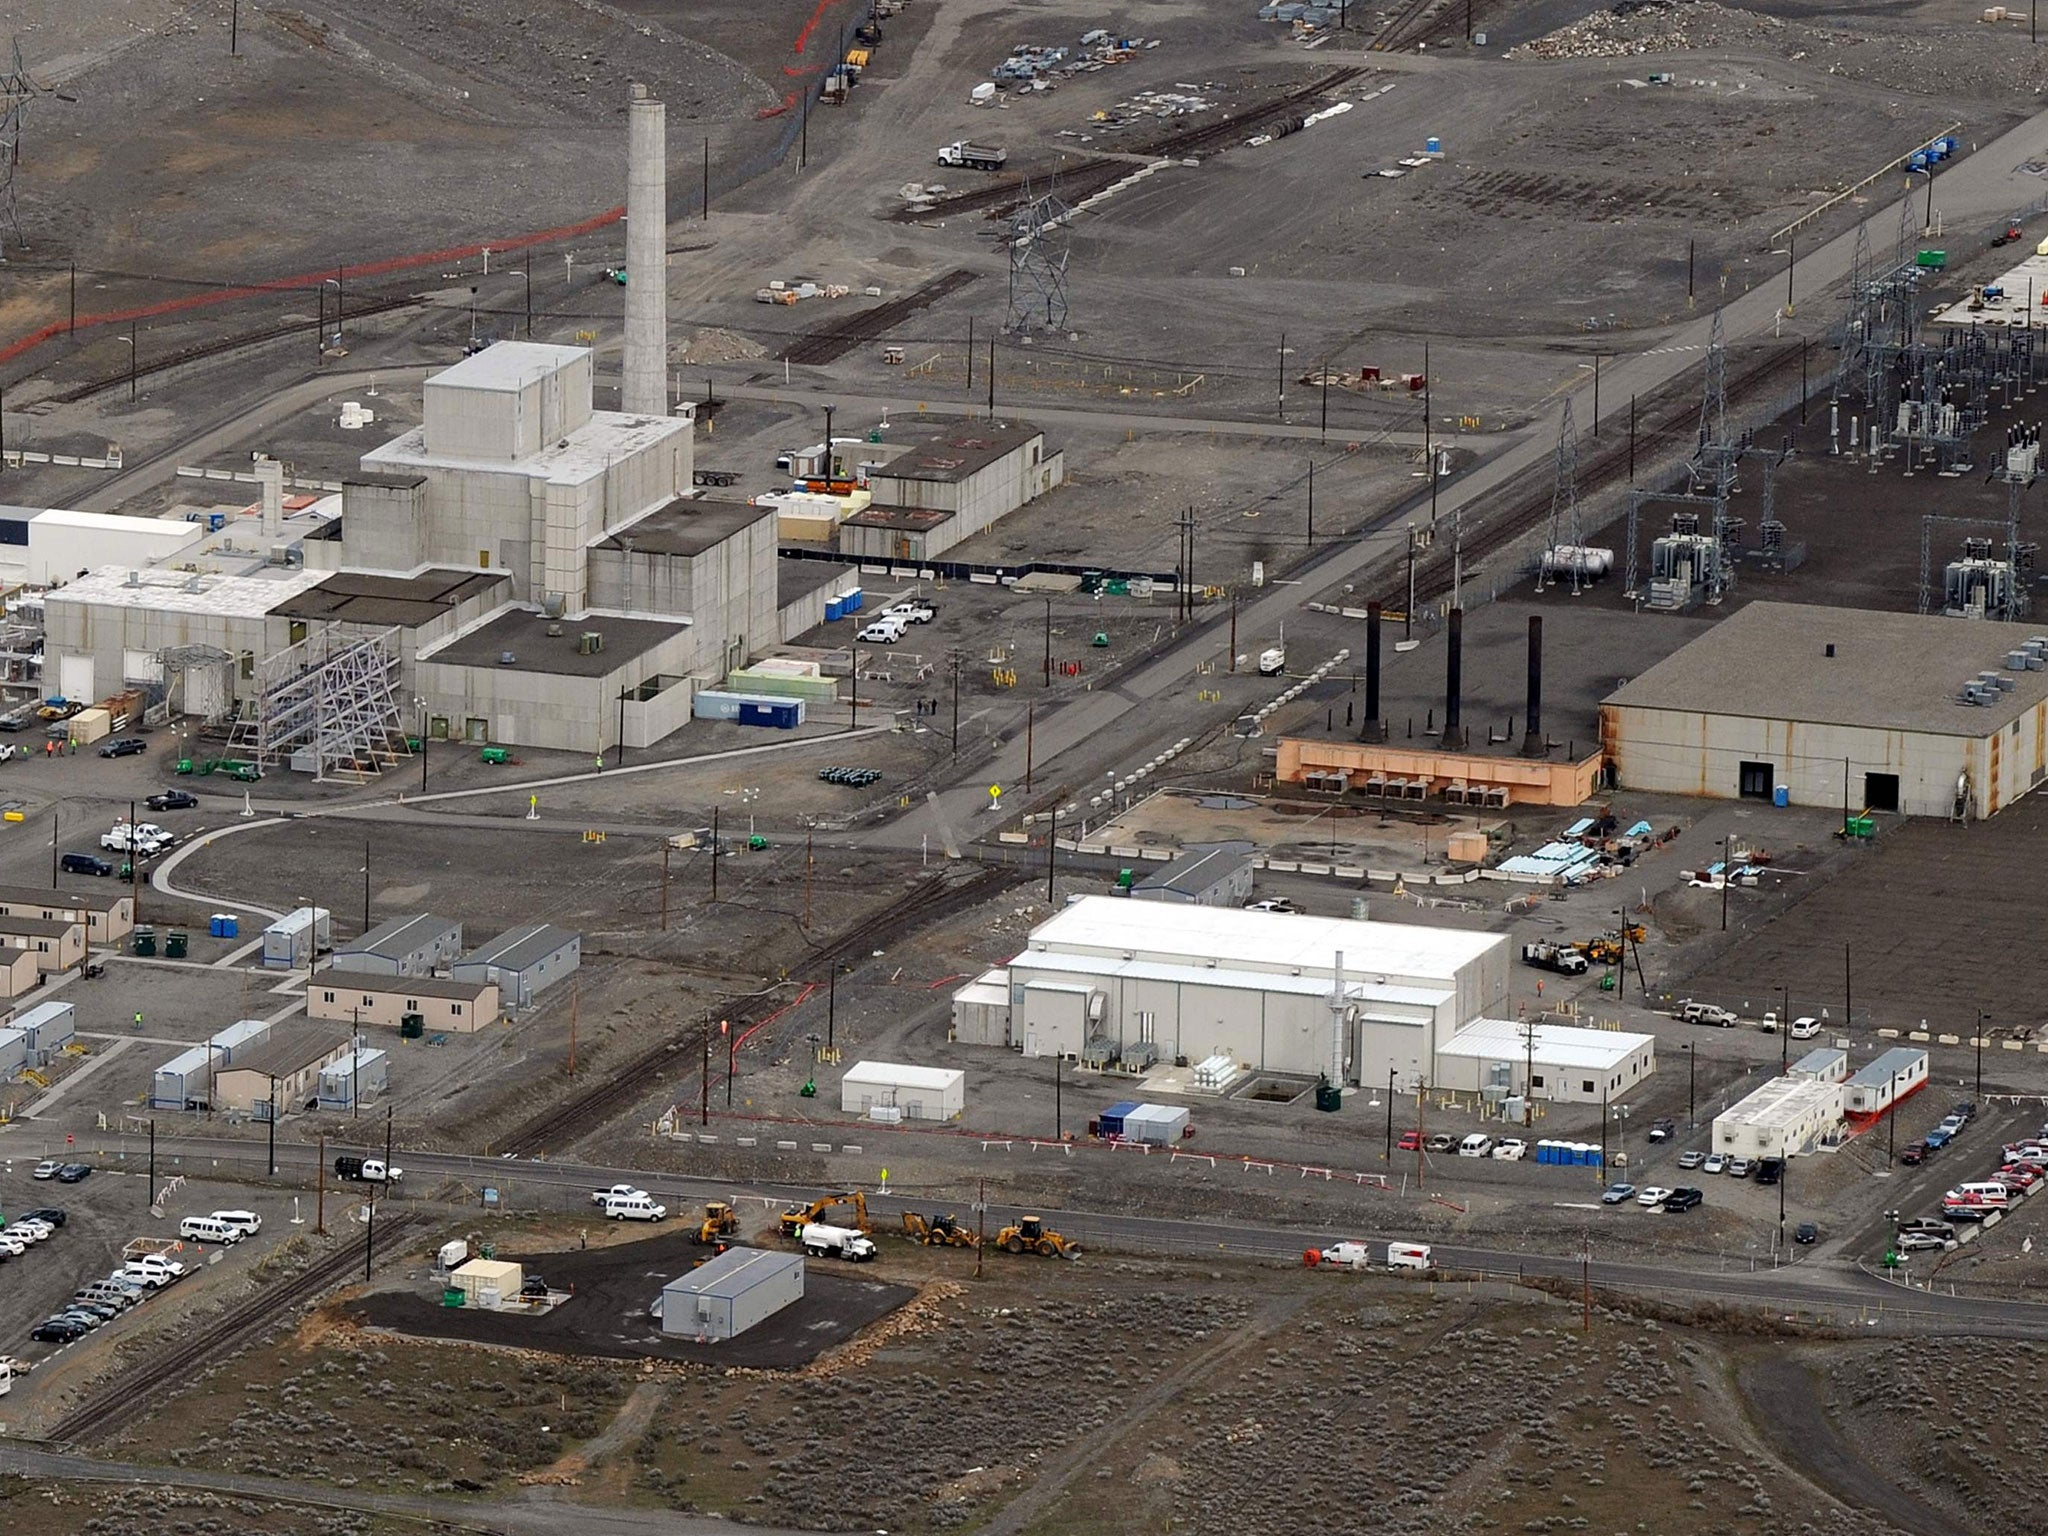 Image result for Hanford nuclear emergency: Workers take cover at 'most toxic place in America' after tunnel collapse